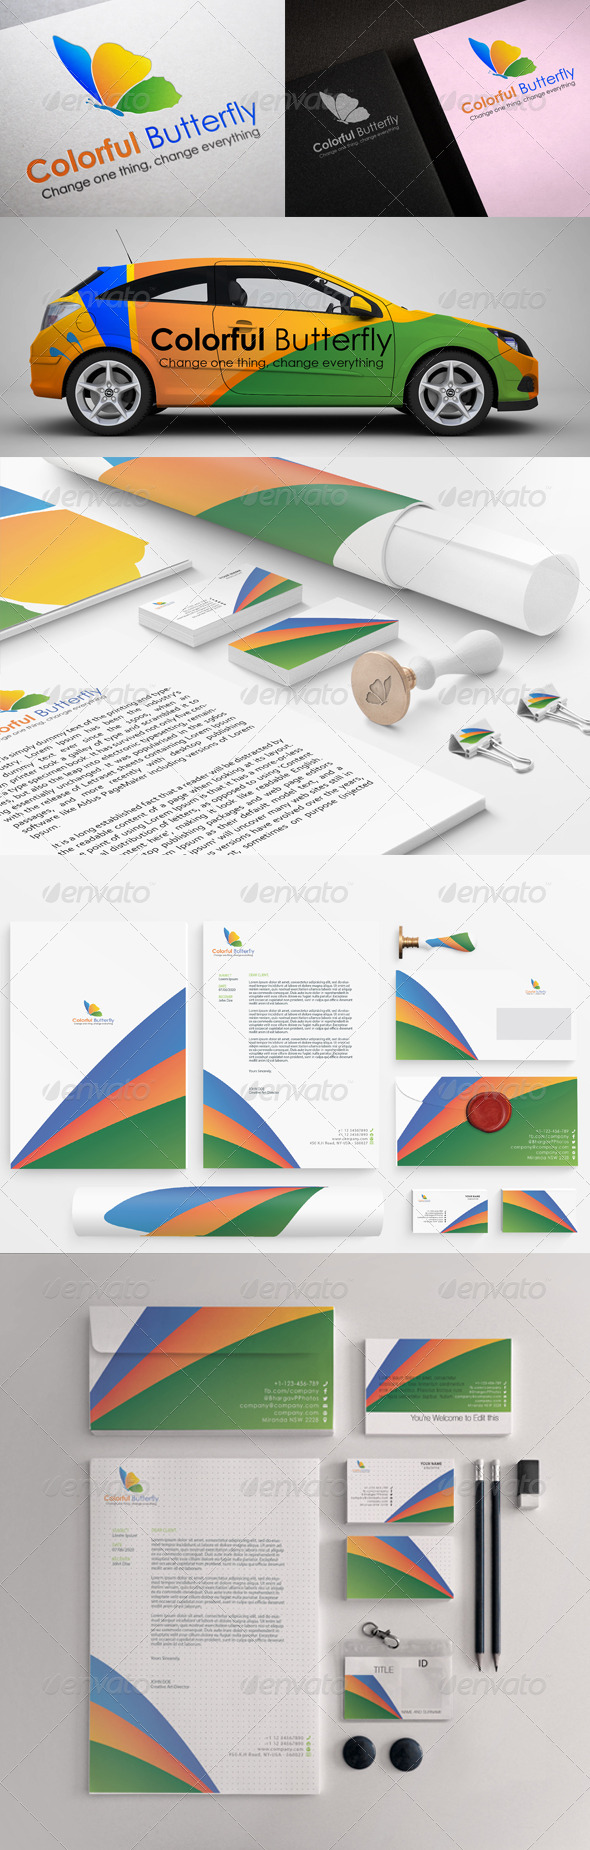 GraphicRiver Colorful Butterfly Stationary Printing Templates 5446386